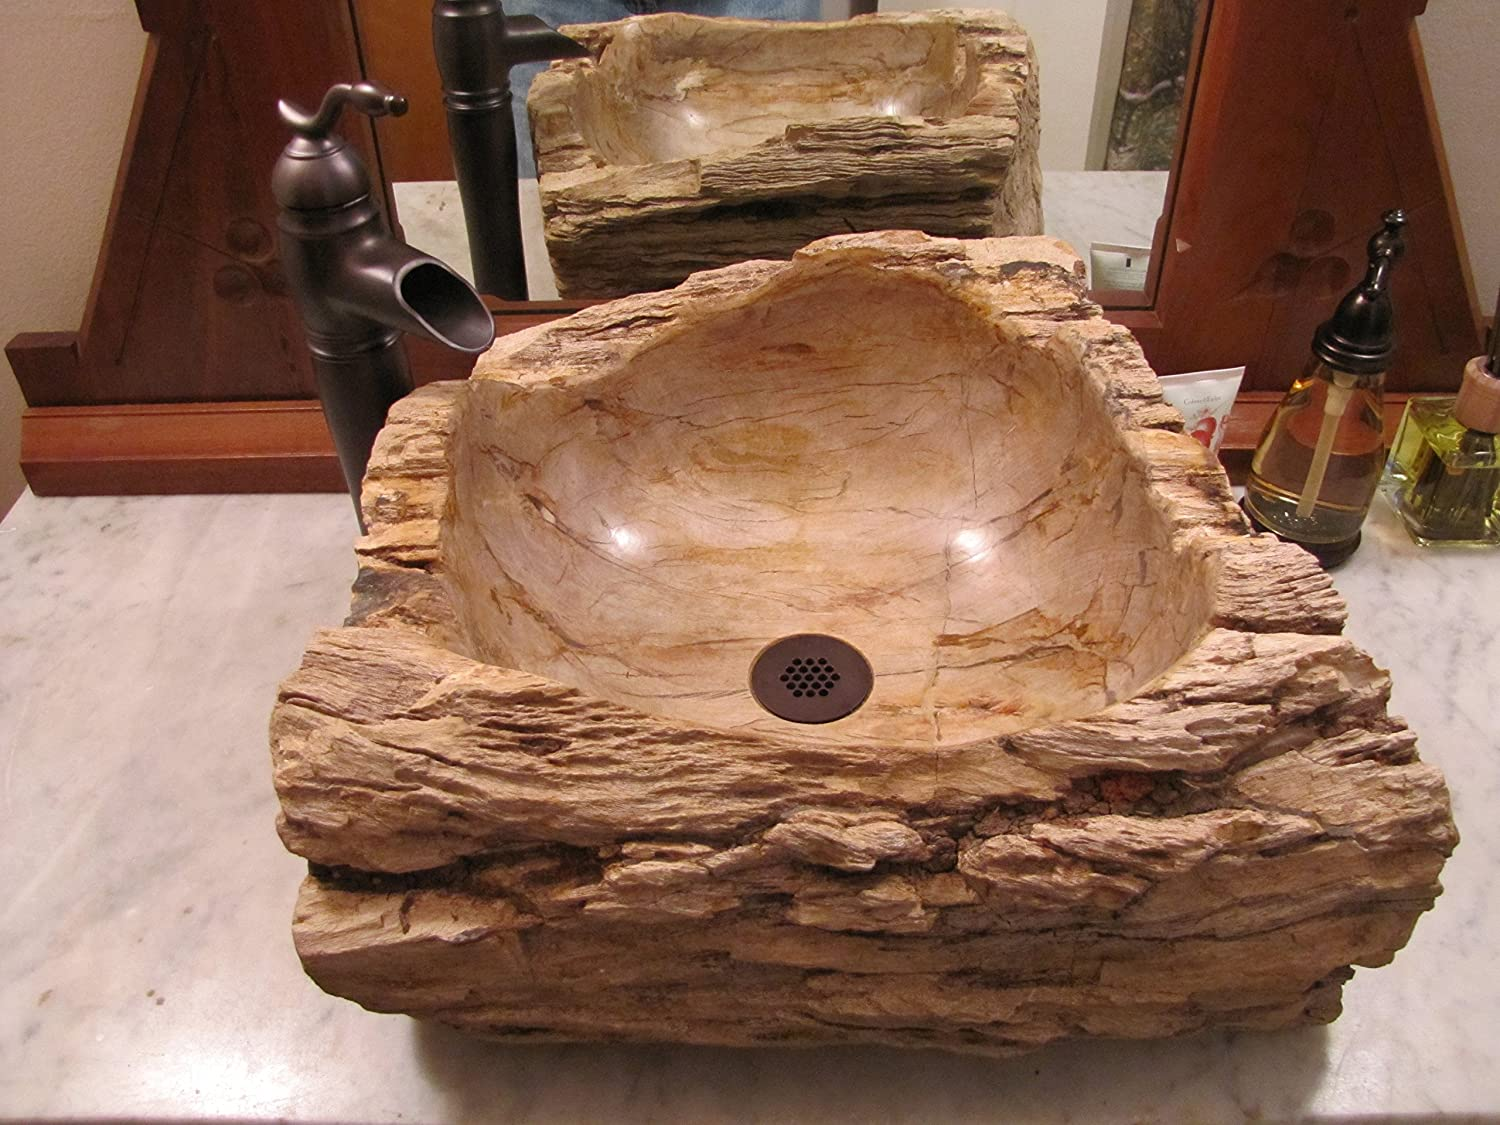 eden bath s028pwp natural stone sink petrified wood vessel sinks amazoncom